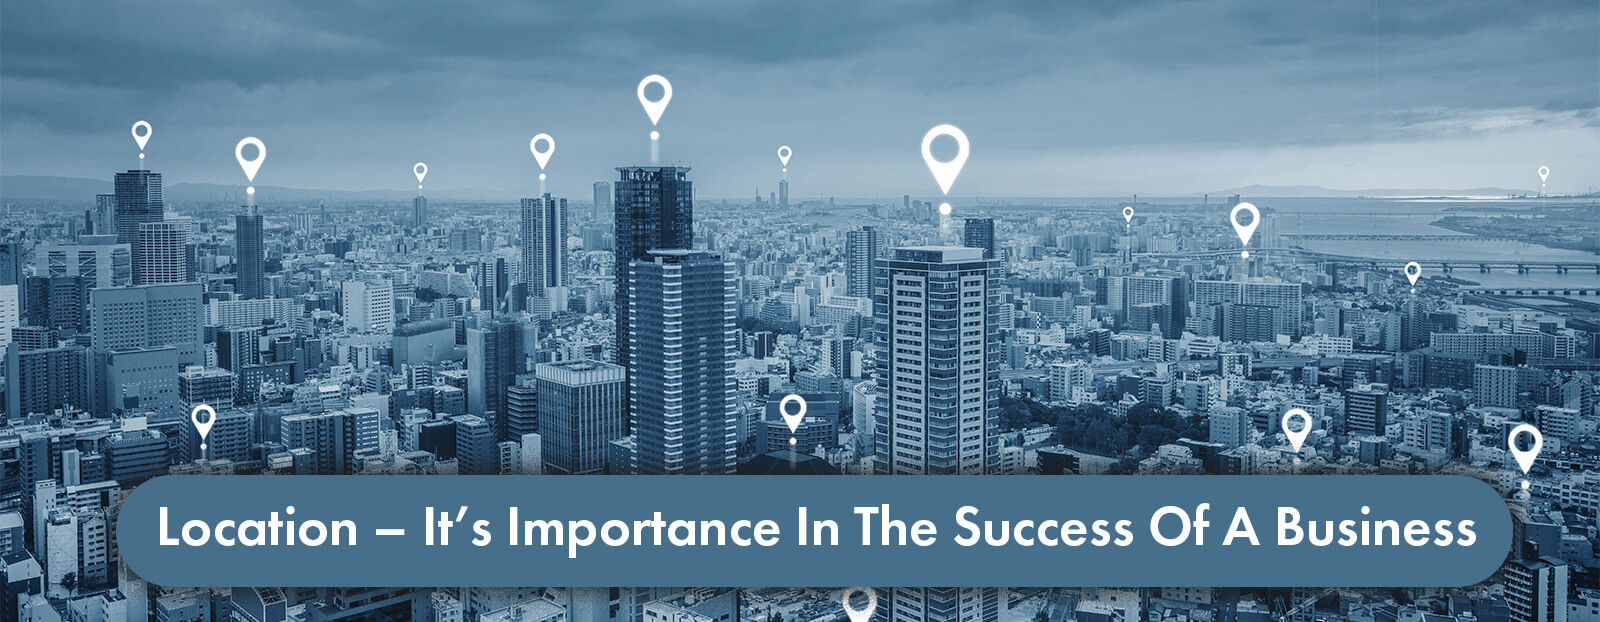 Location – It's Importance In The Success Of A Business